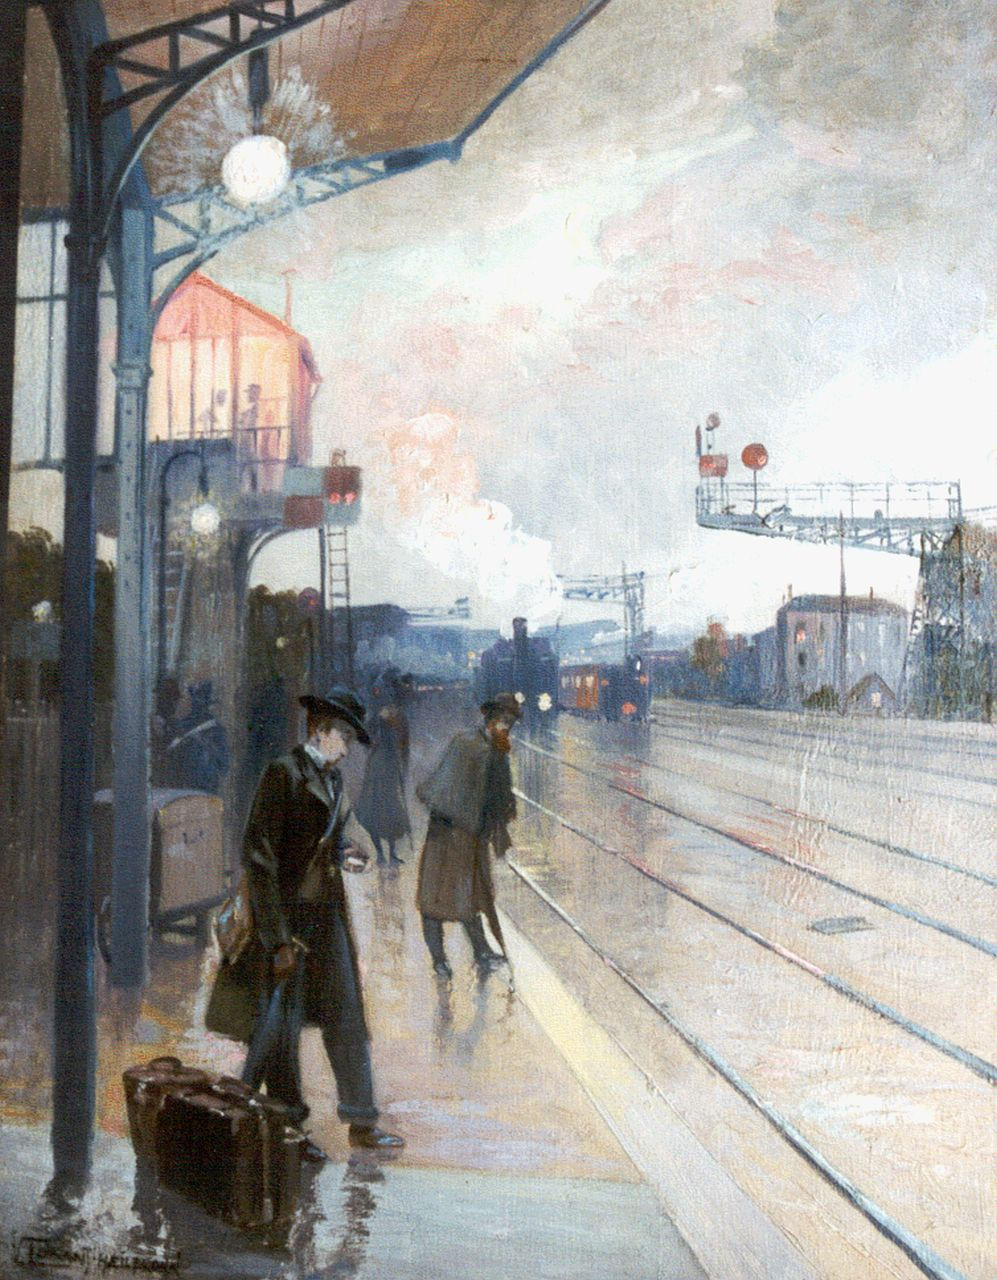 Vincent Lorant-Heilbronn | Station of Asnières, oil on panel, 35.0 x 26.8 cm, signed l.l. and dated 1900